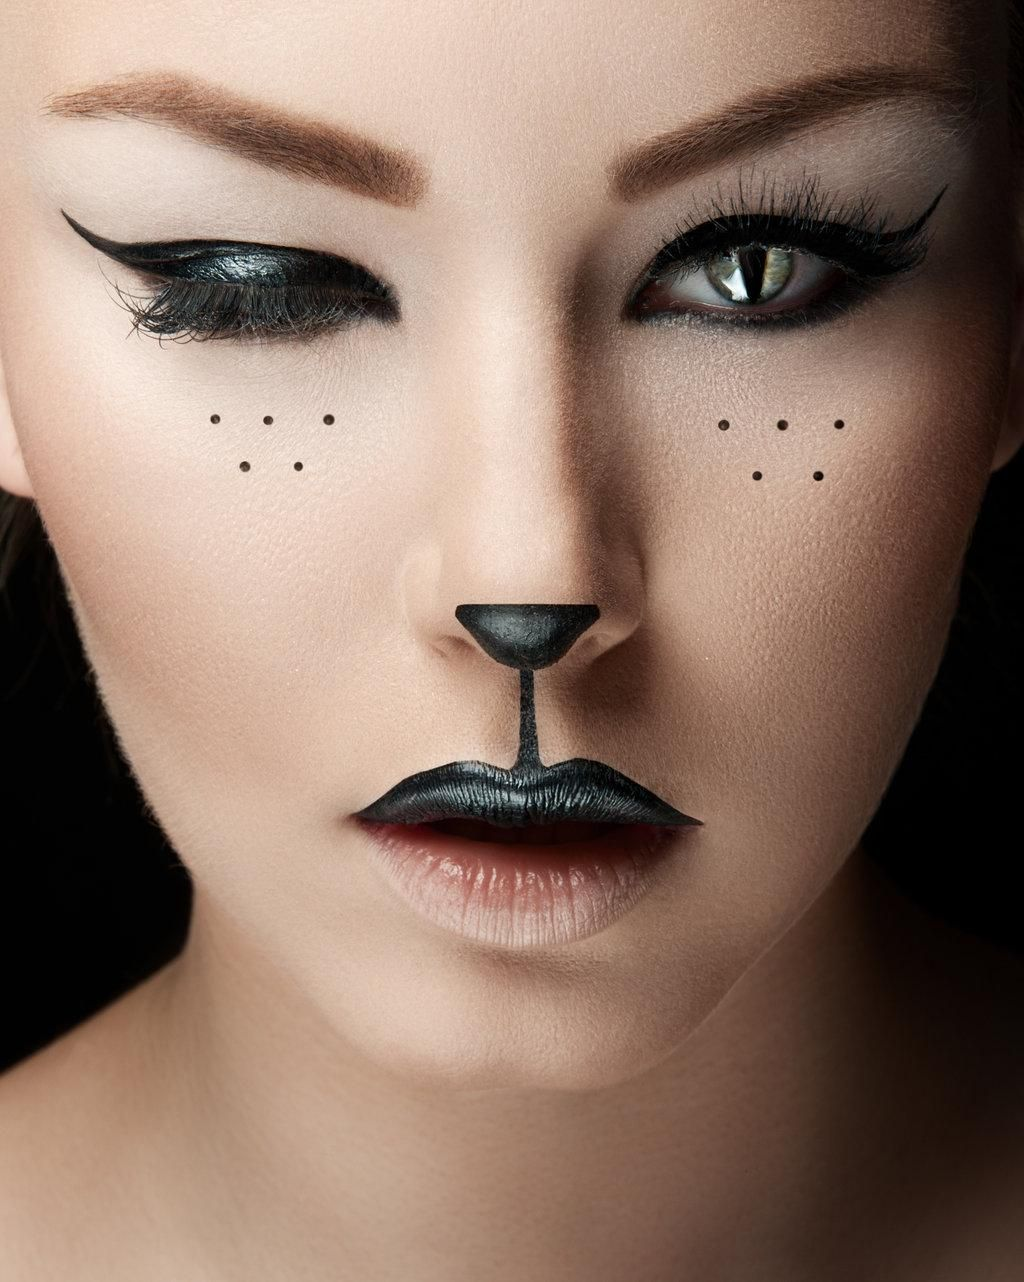 Awesome Cat Eye Makeup For Halloween Pictures - harrop.us - harrop.us